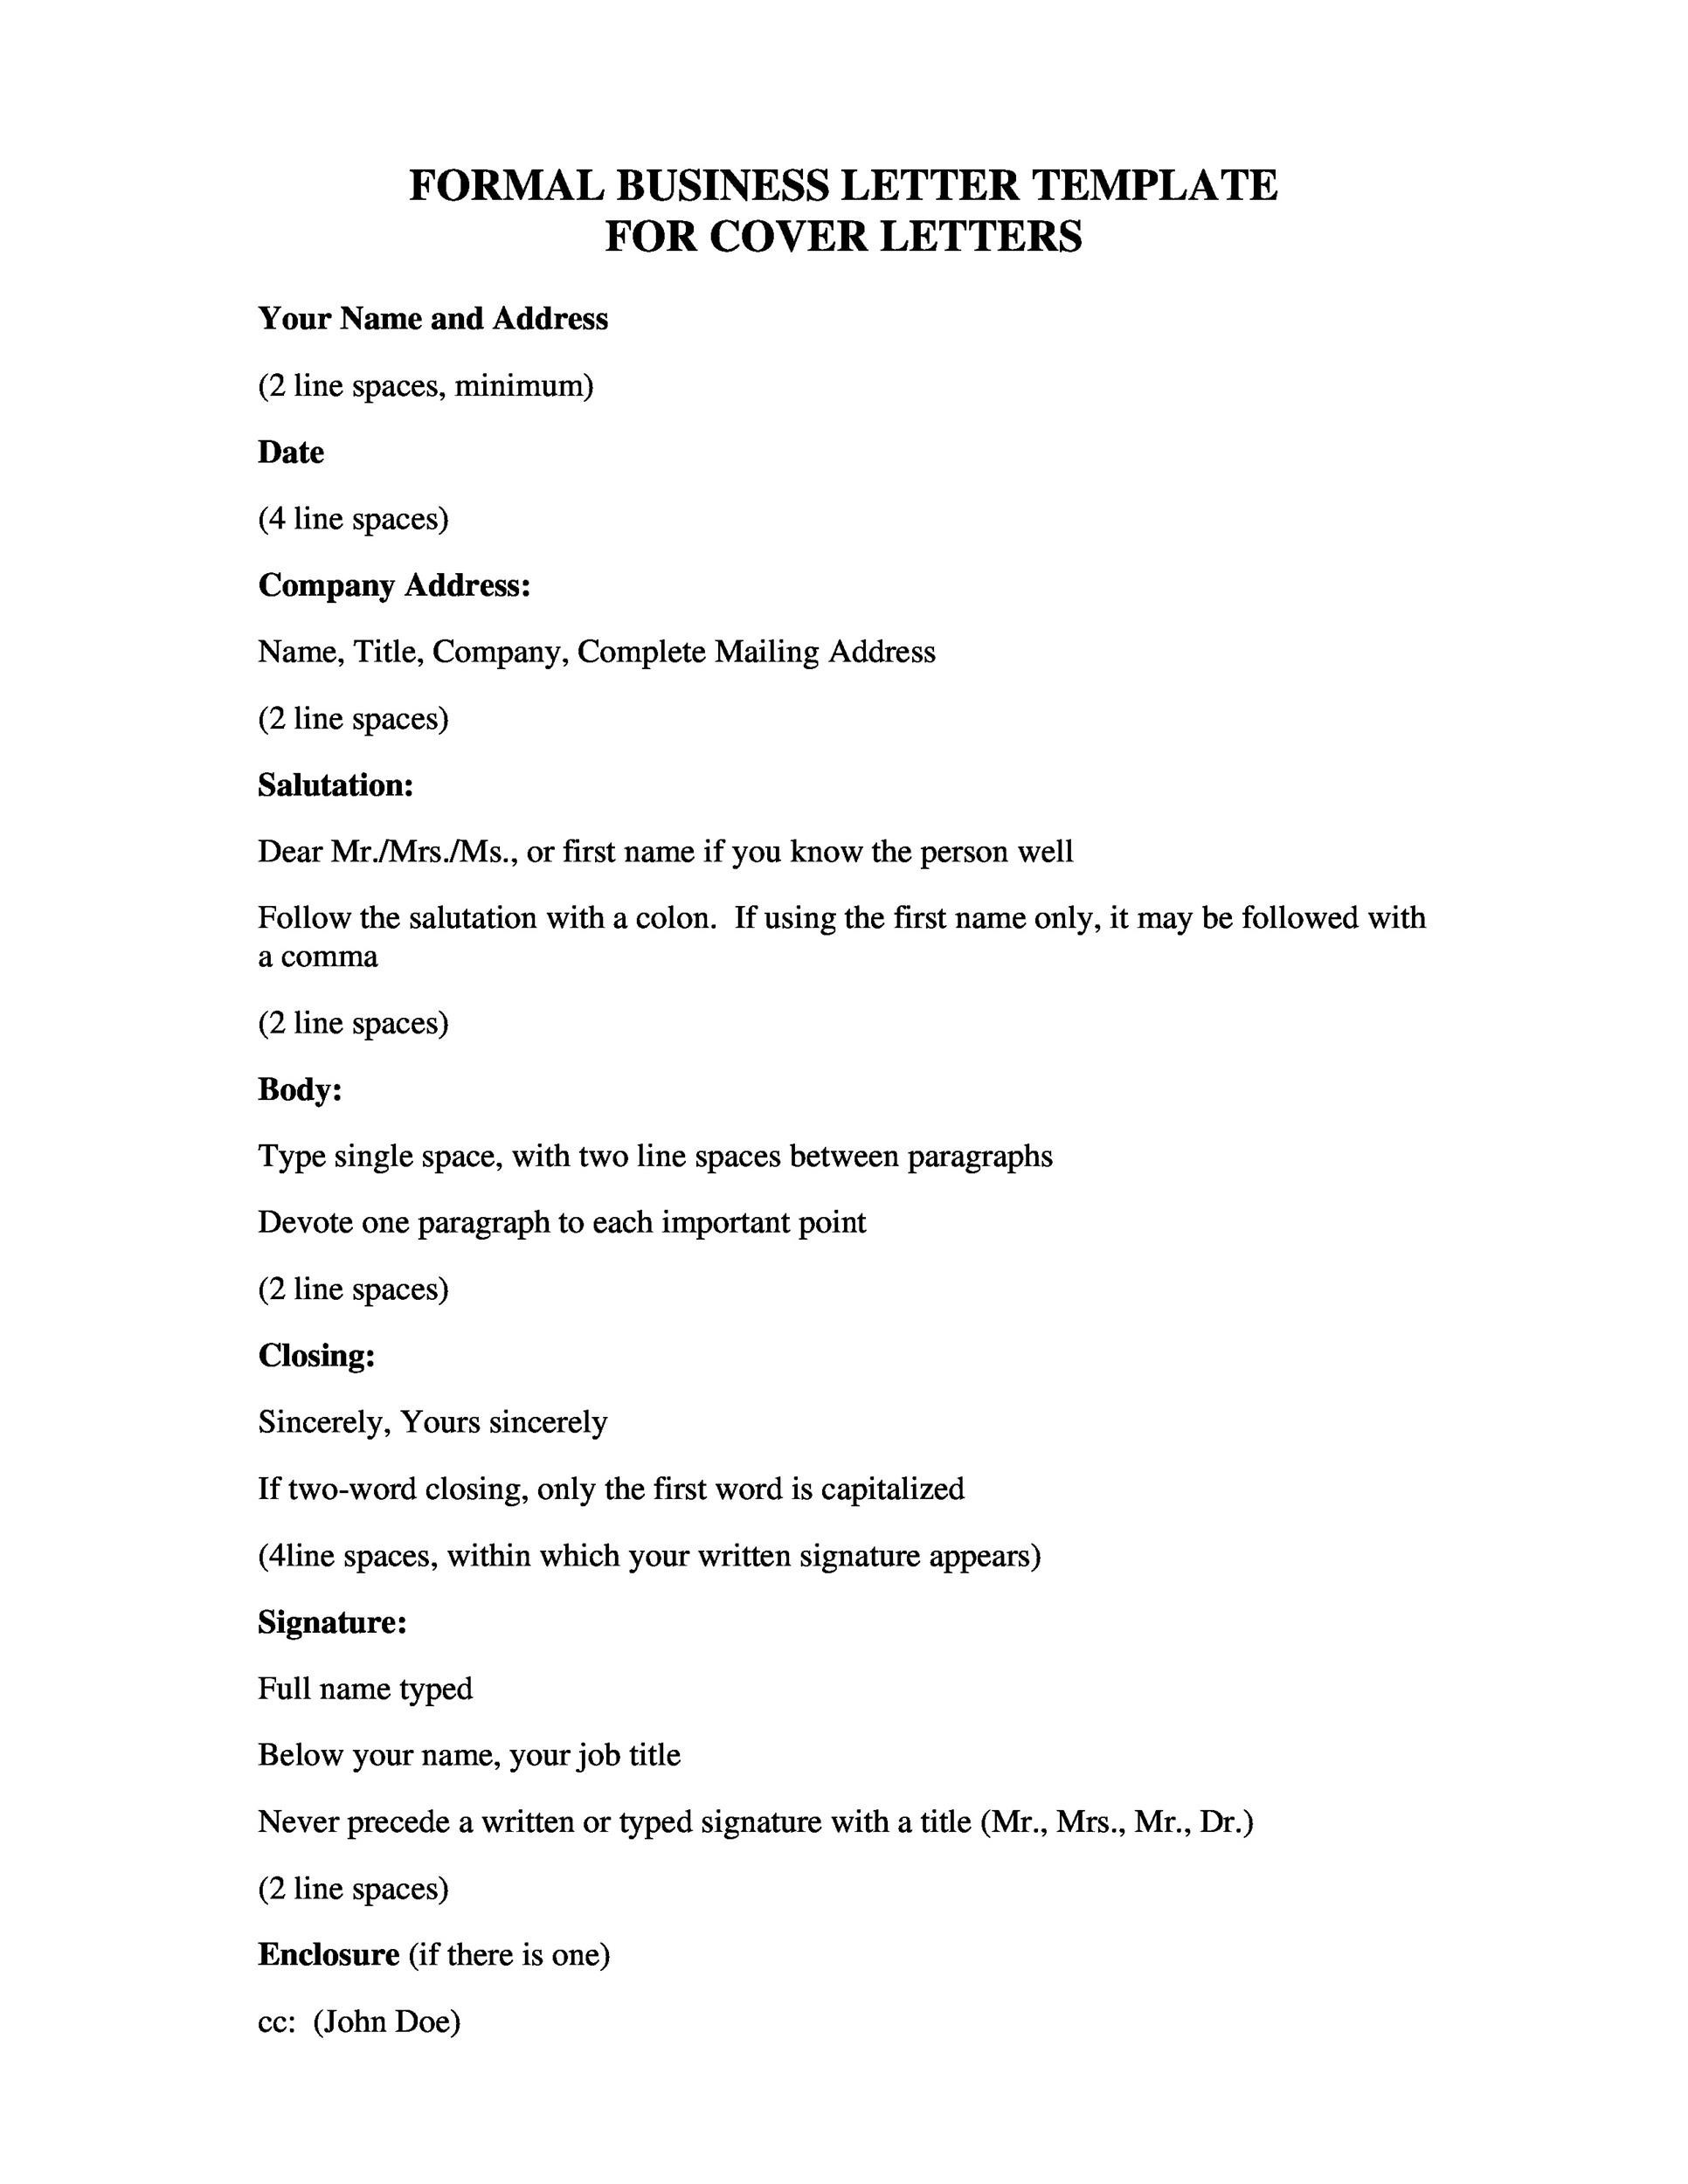 printable formal business letter 02